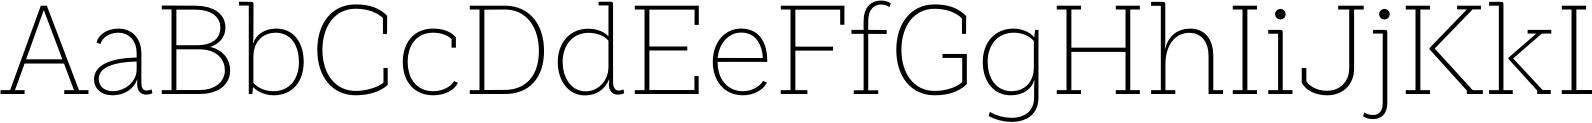 Weekly UltraLight Font